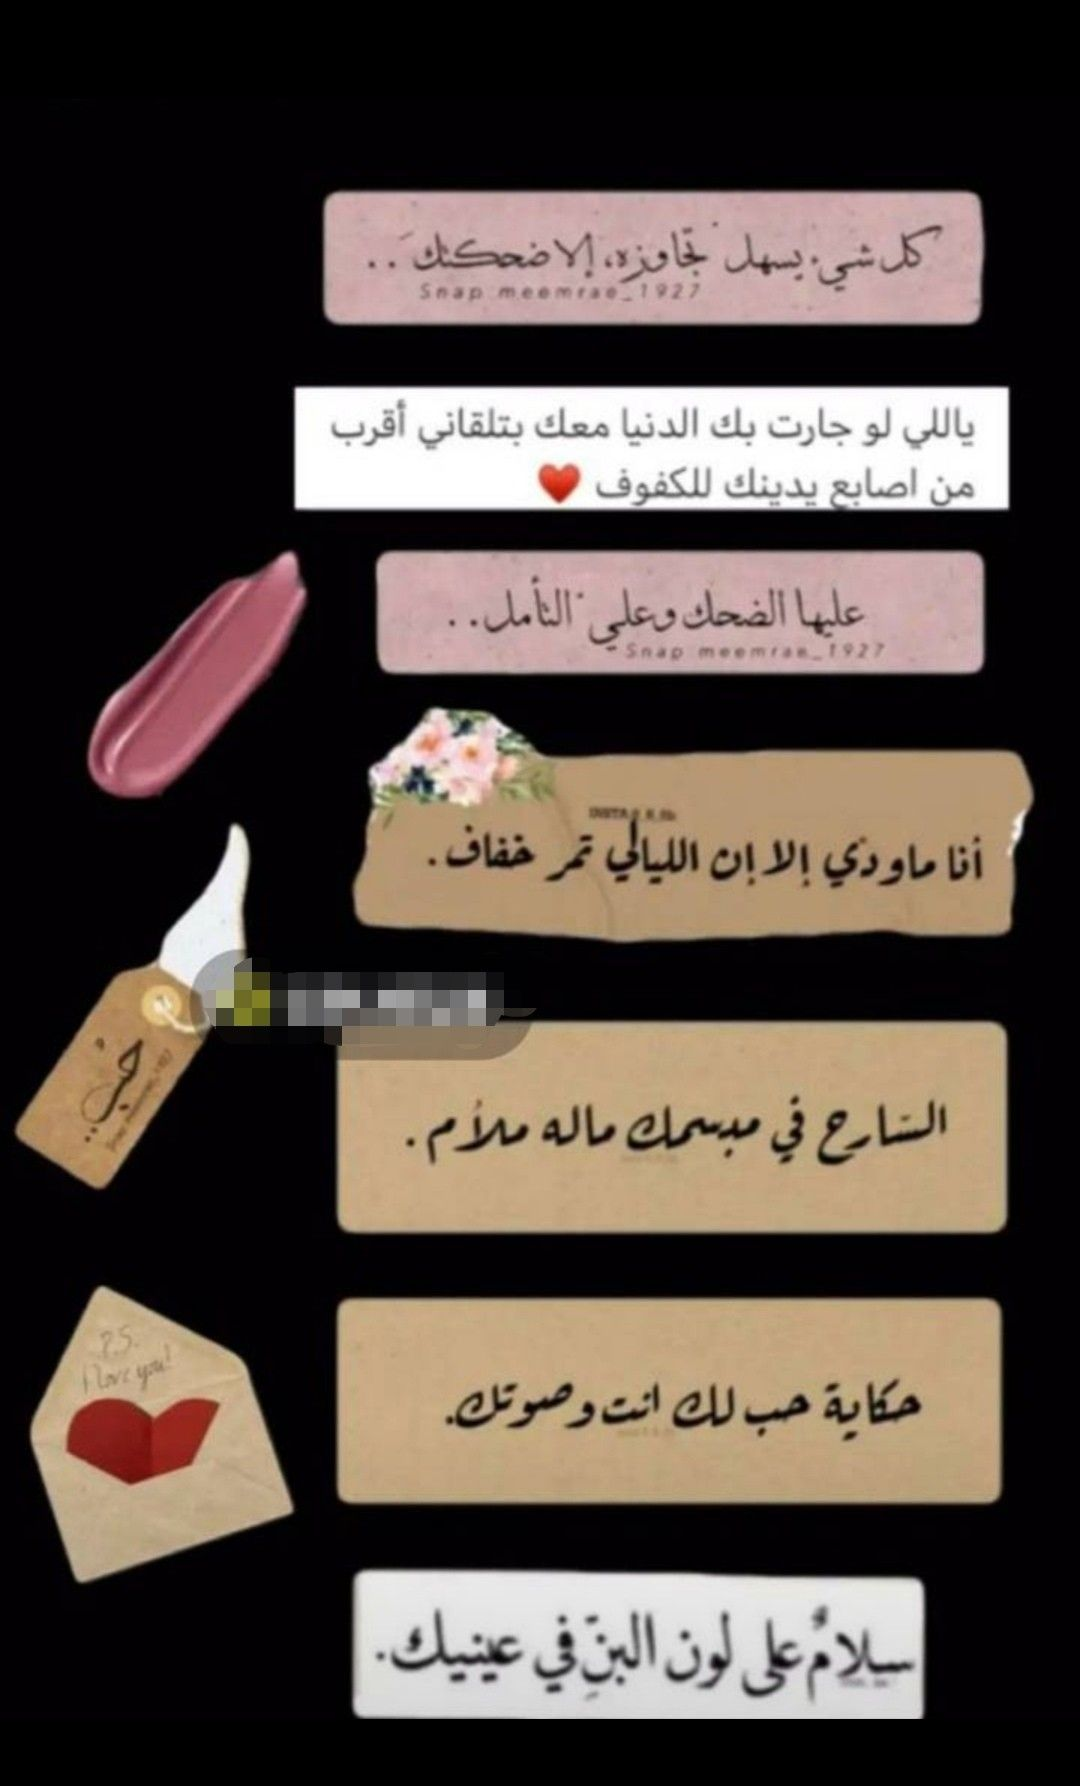 Pin By عيناك روايتي On ملصقات Iphone Wallpaper Quotes Love Love Quotes Wallpaper Sweet Love Quotes